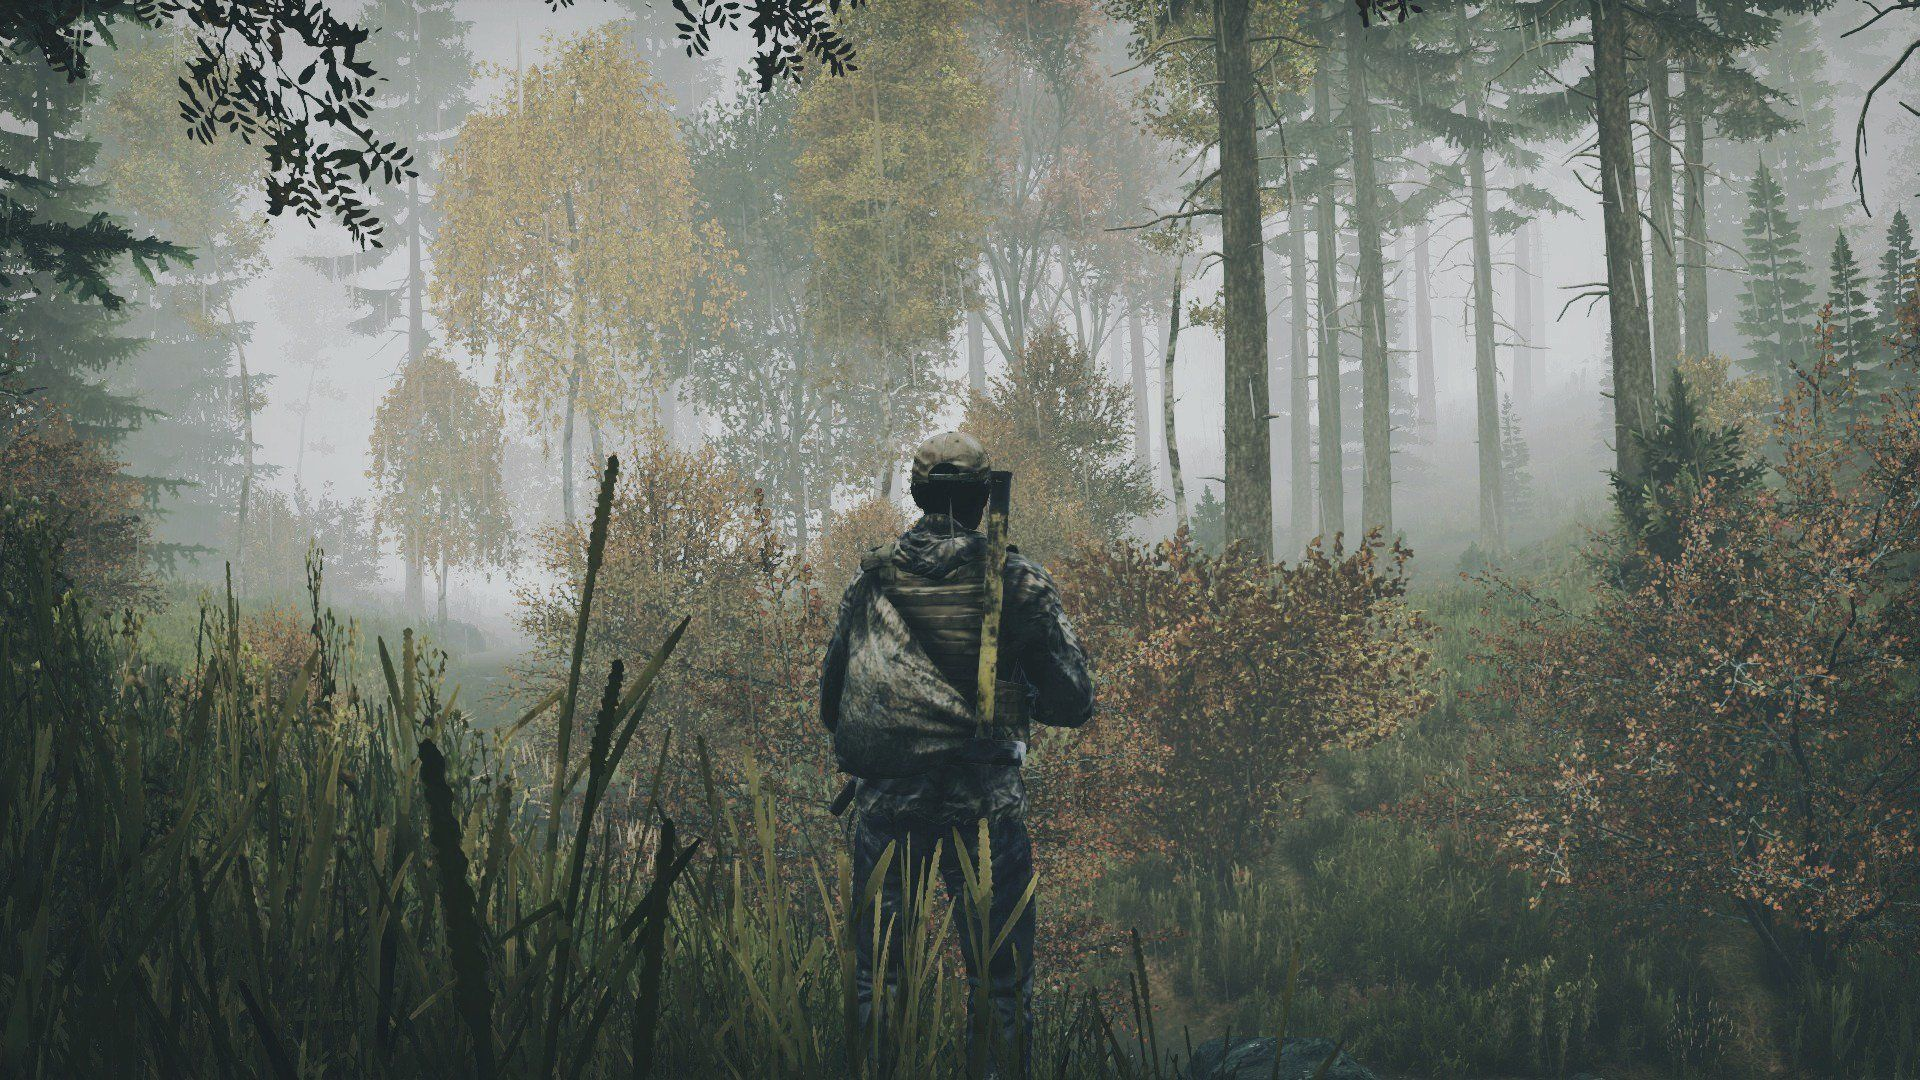 dayz survivors wallpaper